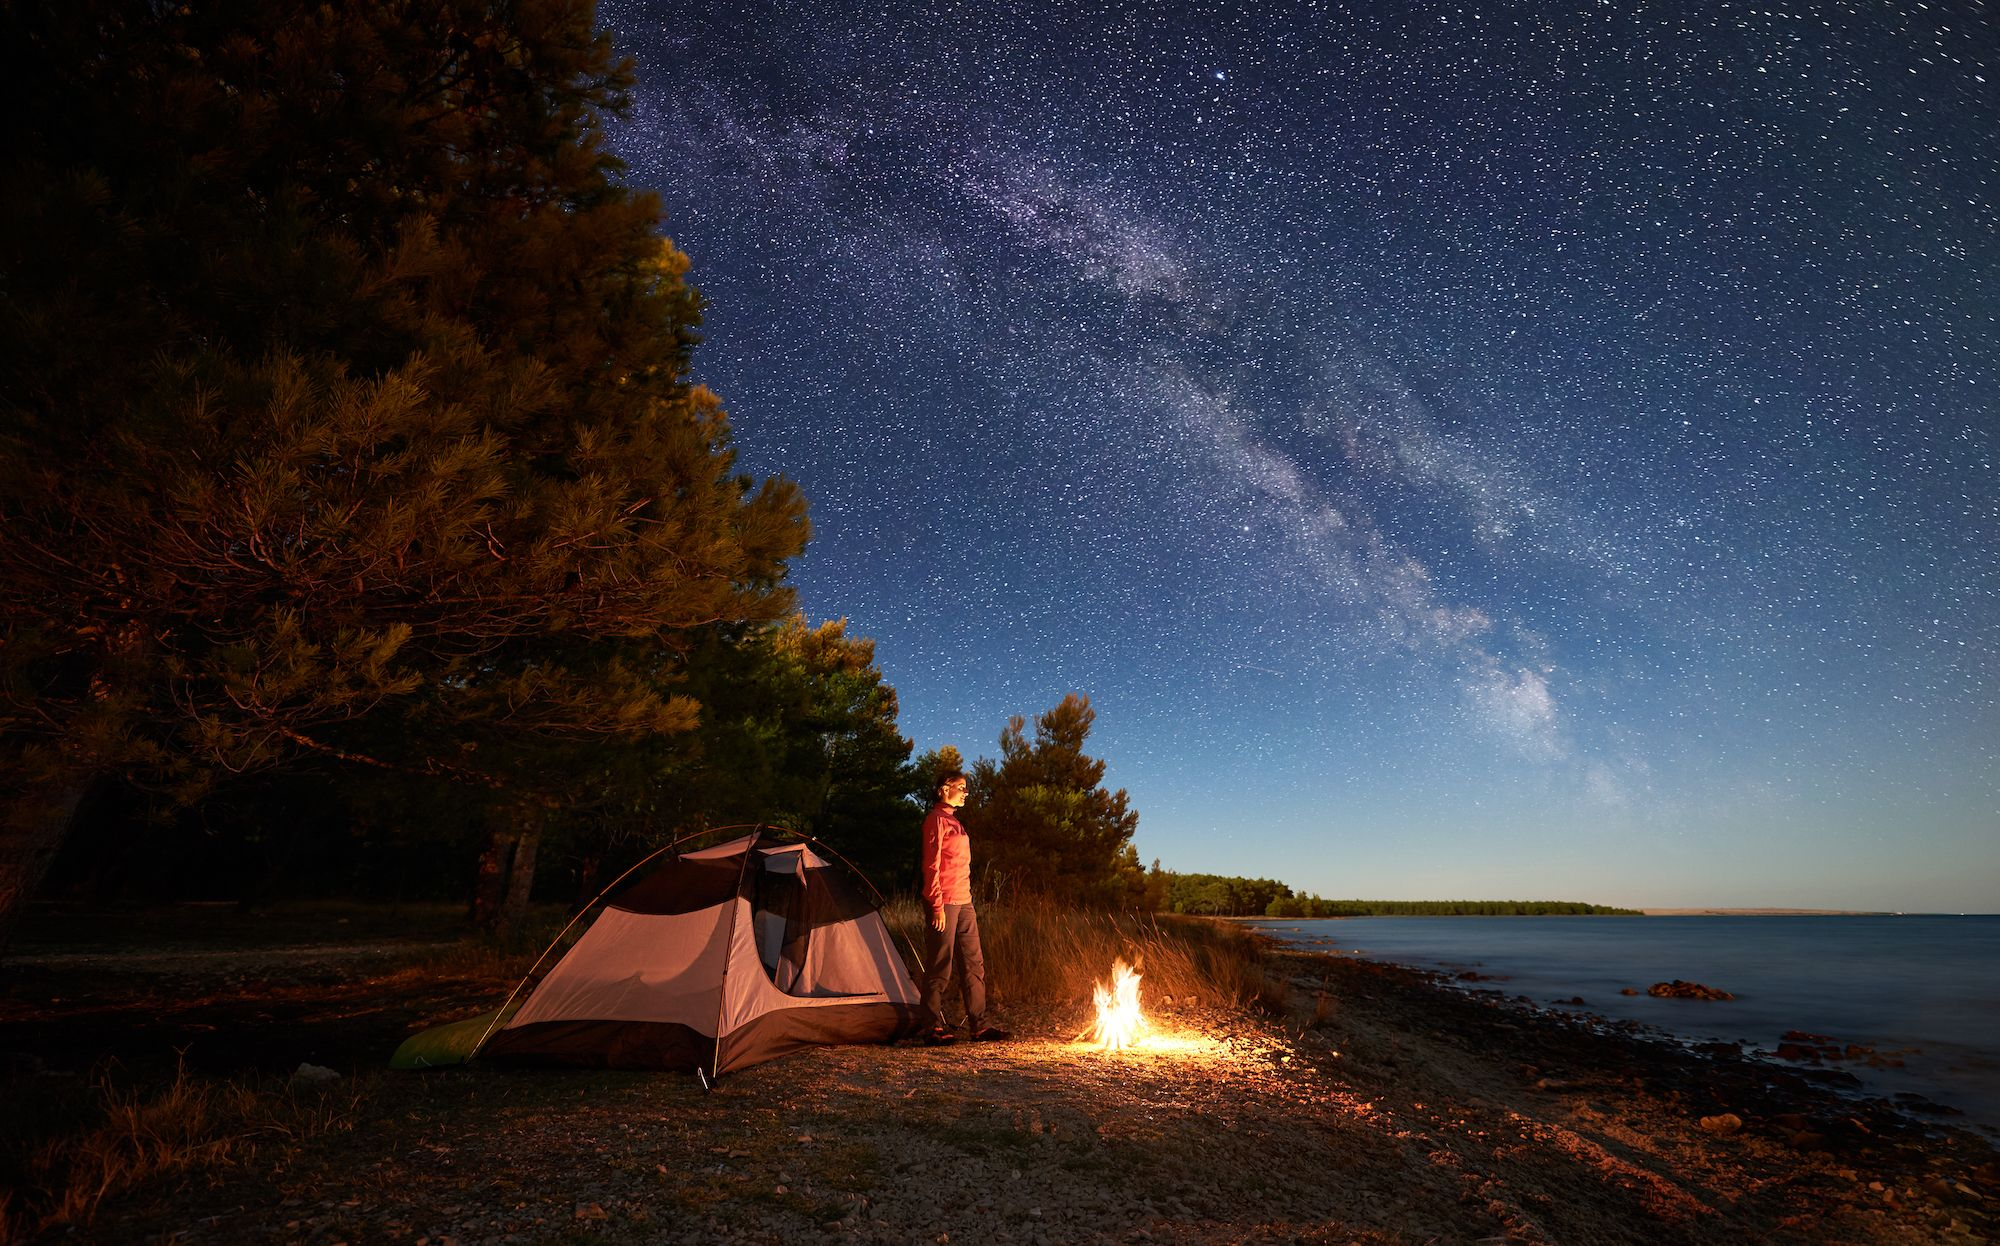 wide angle long exposure of woman standing between her tent and campfire on starry night